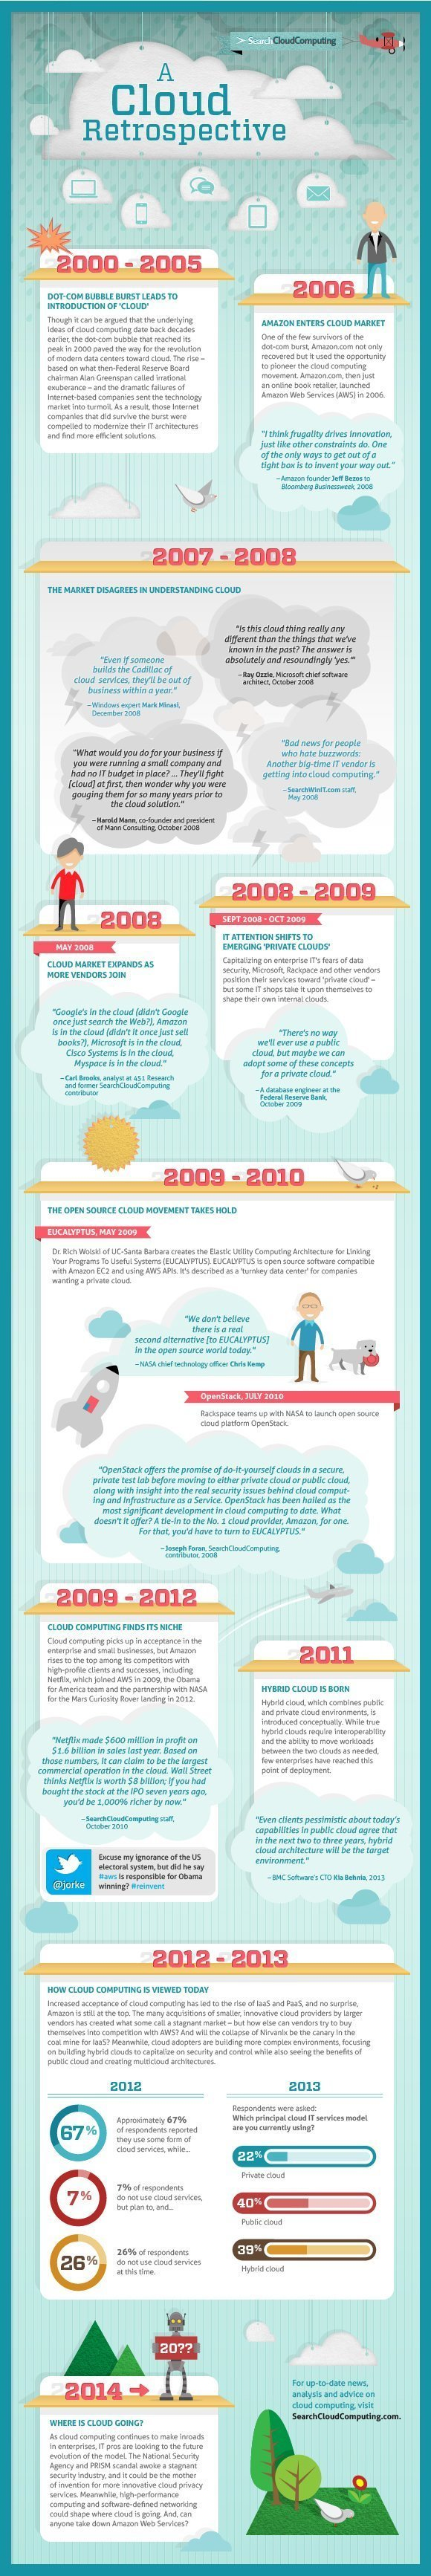 cloud computing timeline